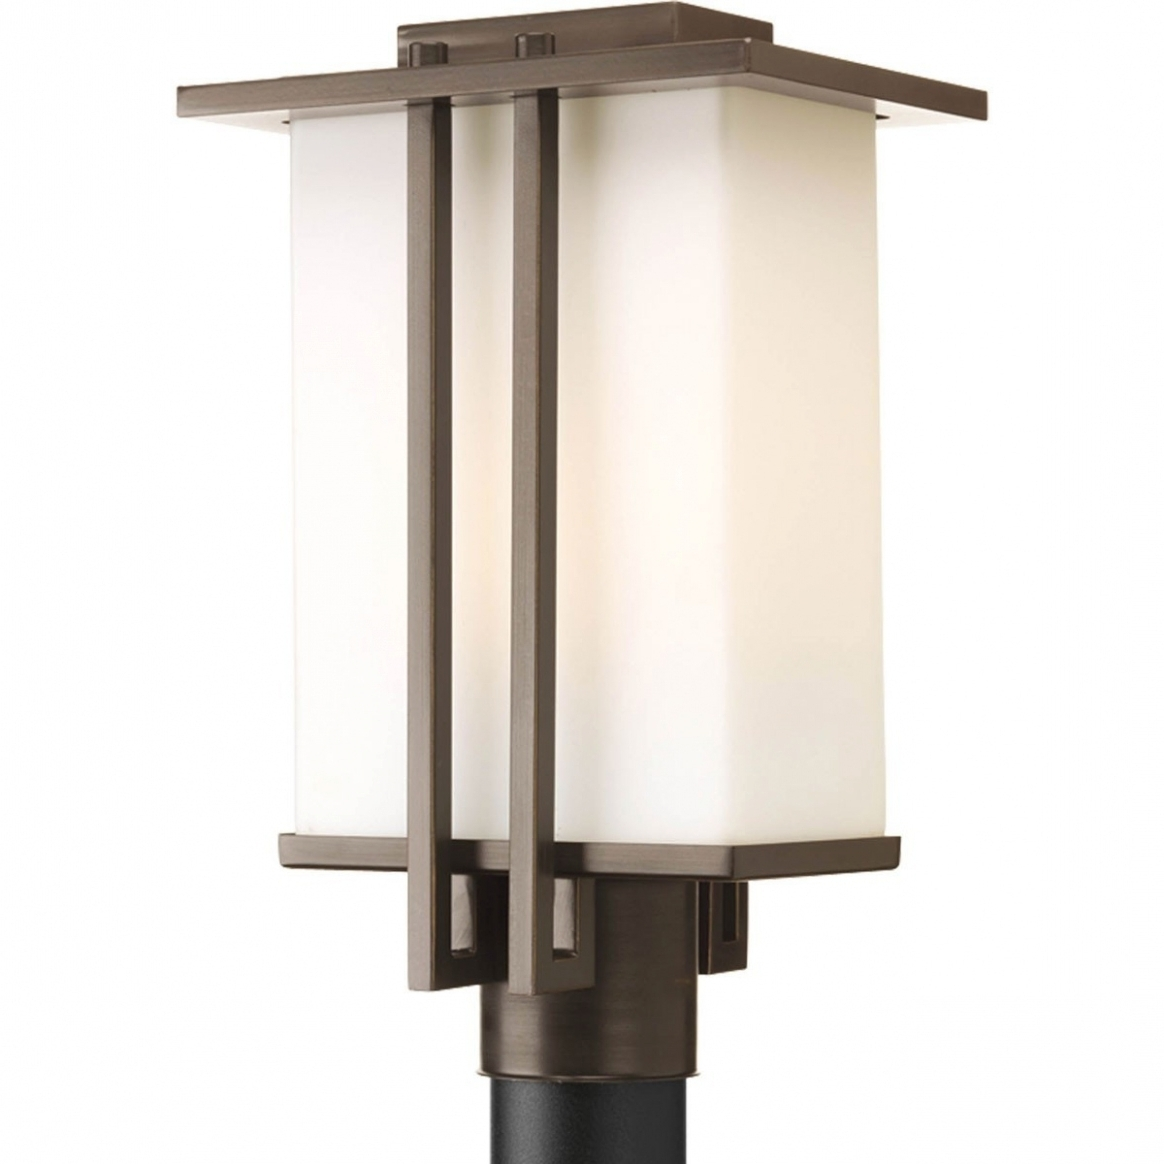 Favorite Outdoor Lanterns On Post In Lighting: Modern Outdoor Lamp Post Lights • Outdoor Lighting (View 3 of 20)